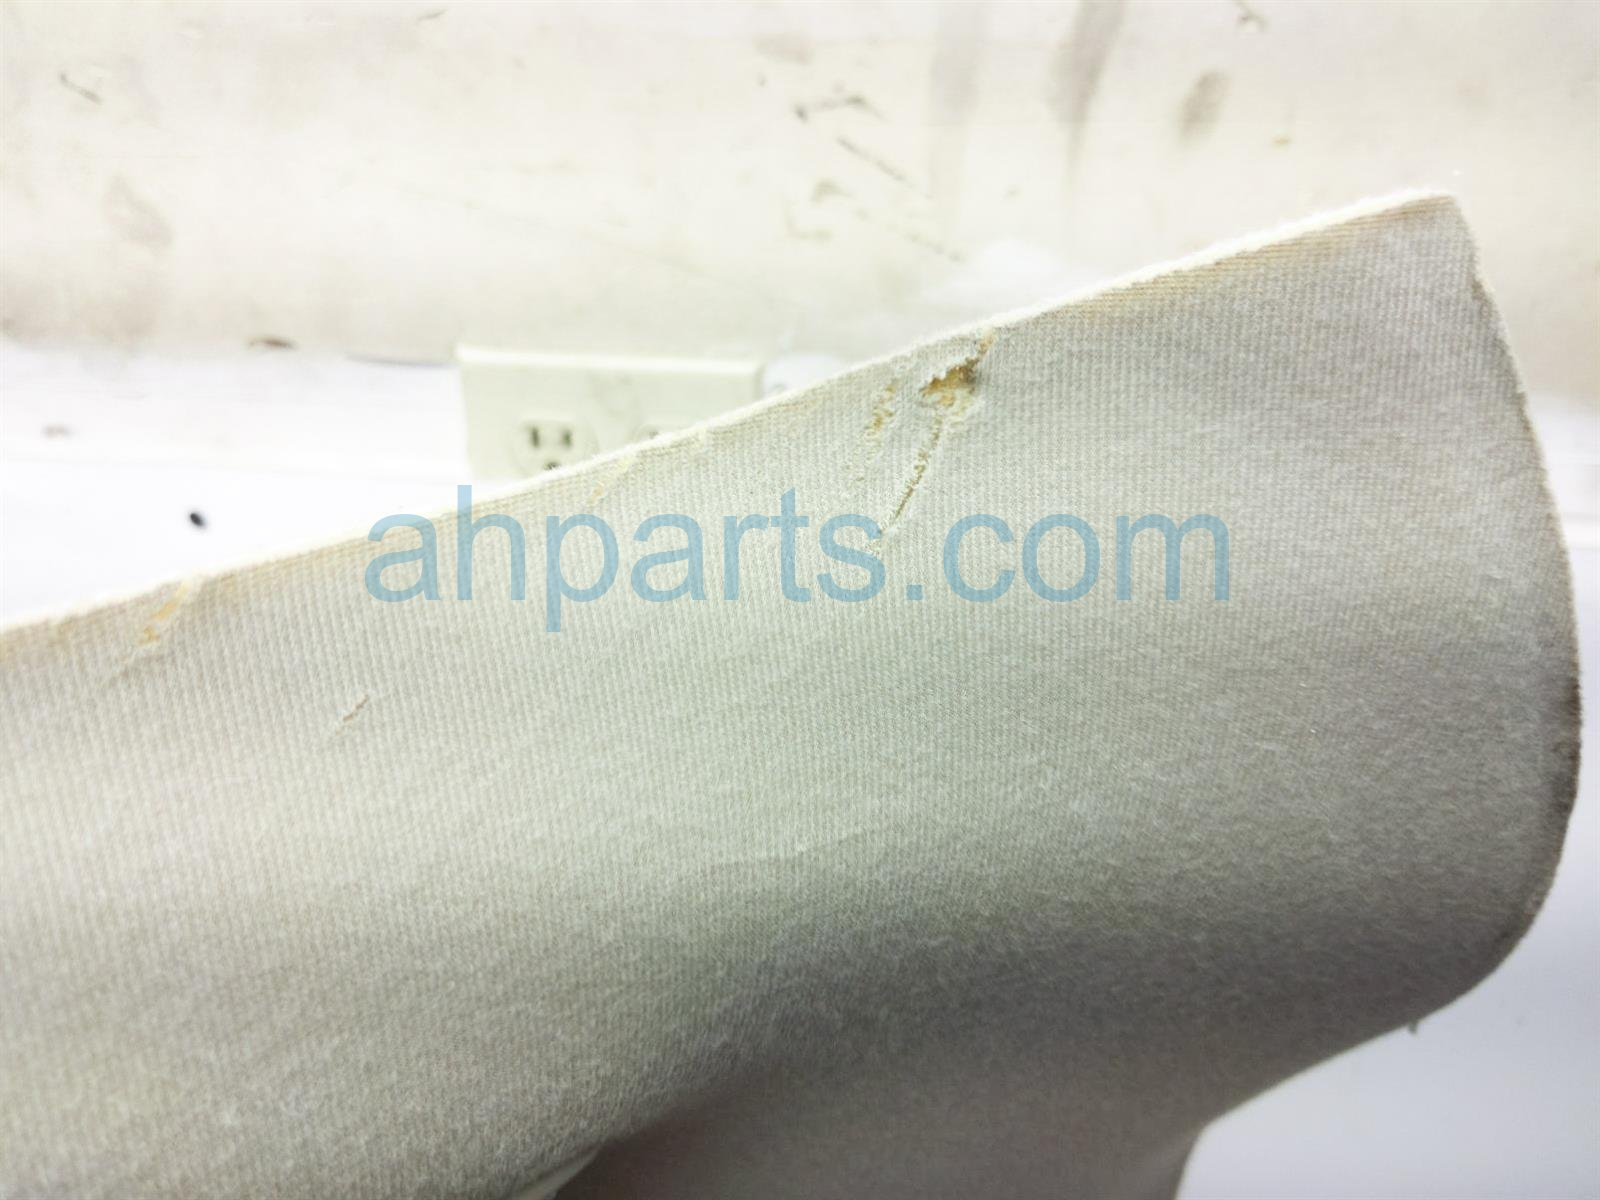 2013 Toyota Sienna Headliner / Roof Lining   Tan 63111 08070 Replacement